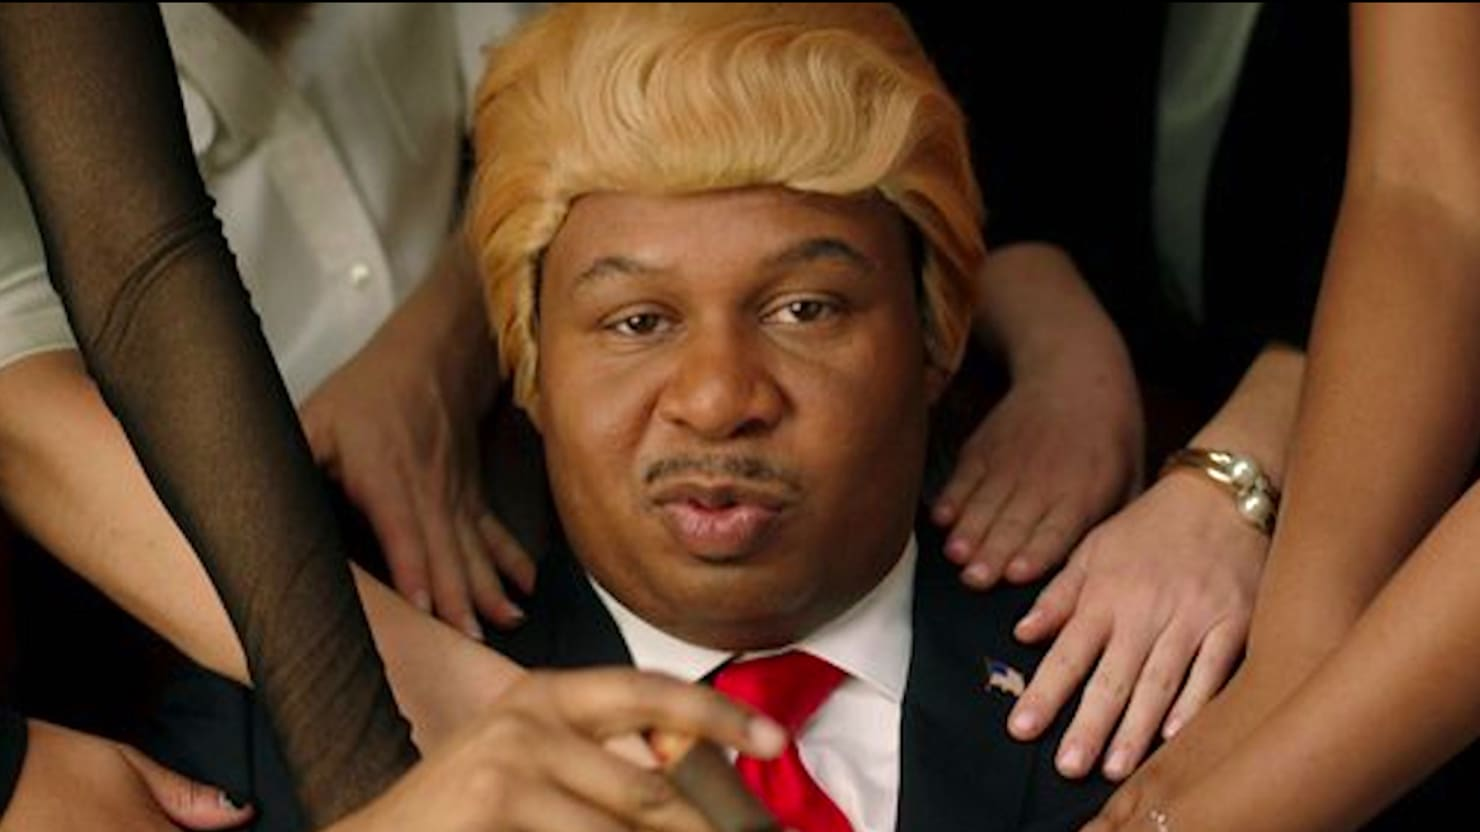 'The Daily Show' Premieres Rap Video Using Only Donald Trump Quotes